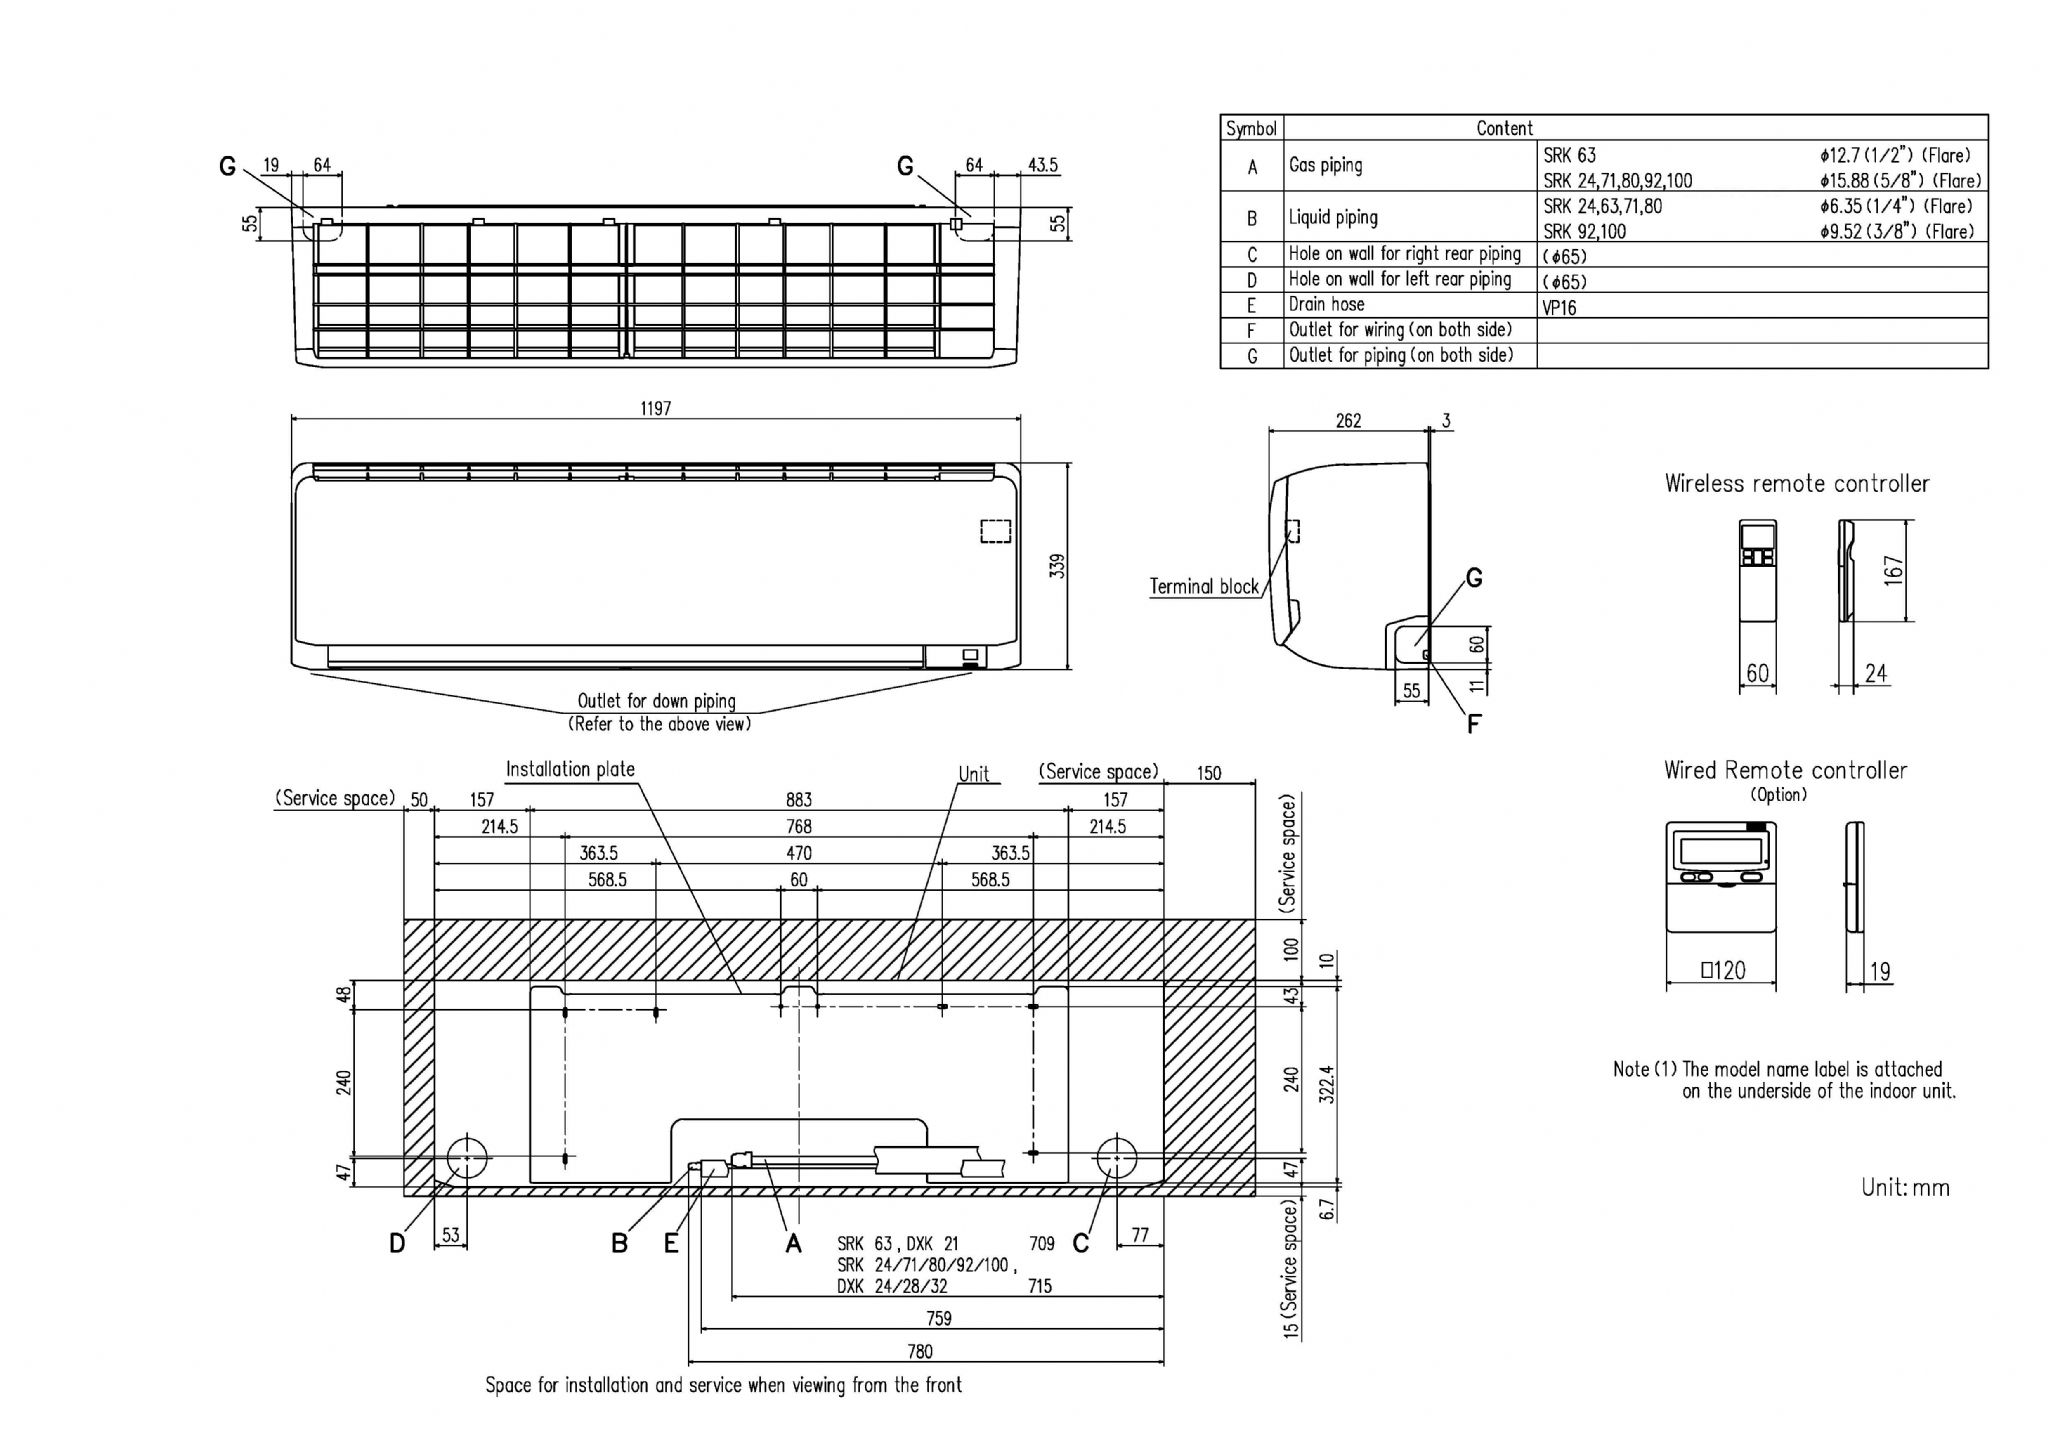 Mitsubishi Air Conditioning Diagram Wiring Master Blogs Inverter Heavy Industries Srk80zr S Wall Mounted Rh Orionairsales Co Uk Ductless